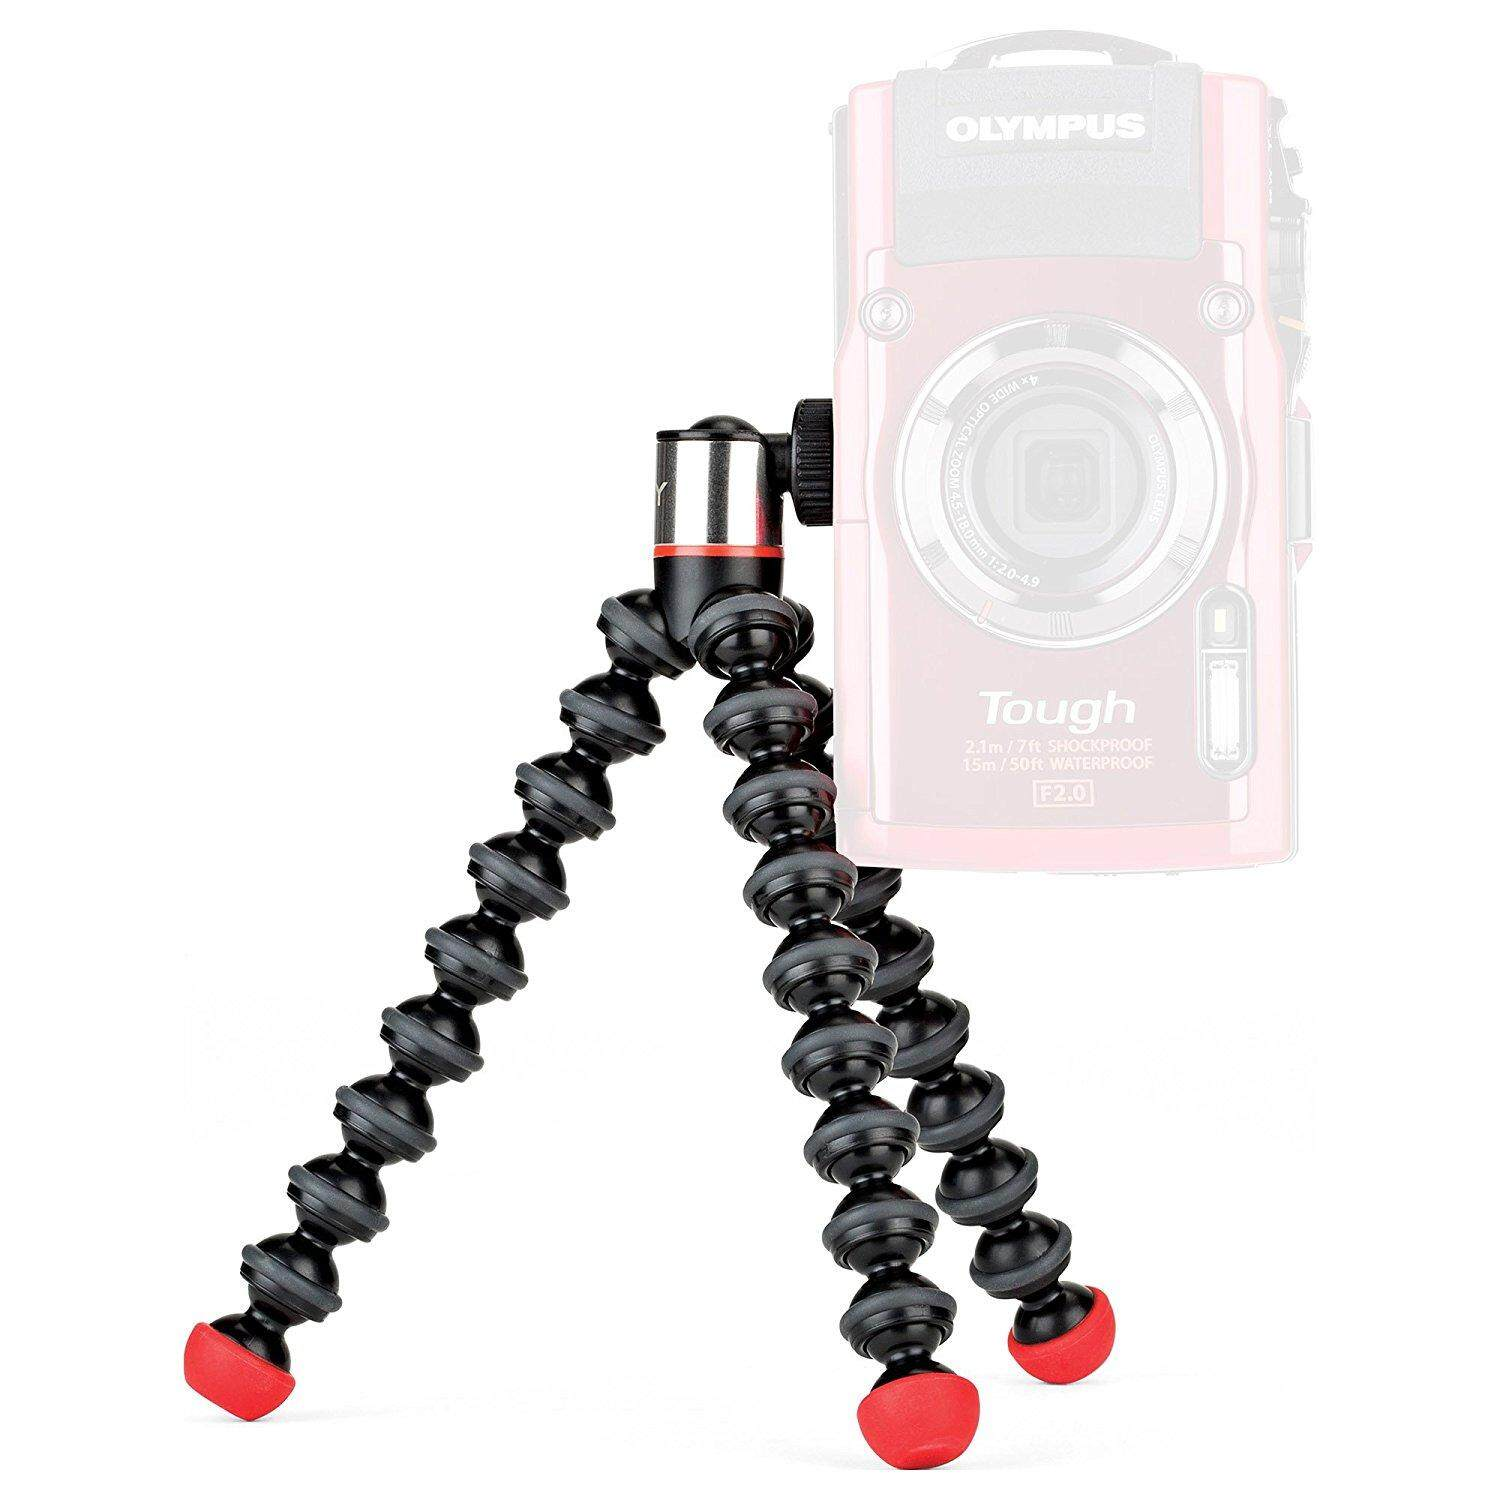 JOBY GorillaPod Magnetic 325: A Magnetic Tripod for Point & Shoot and Small Cameras